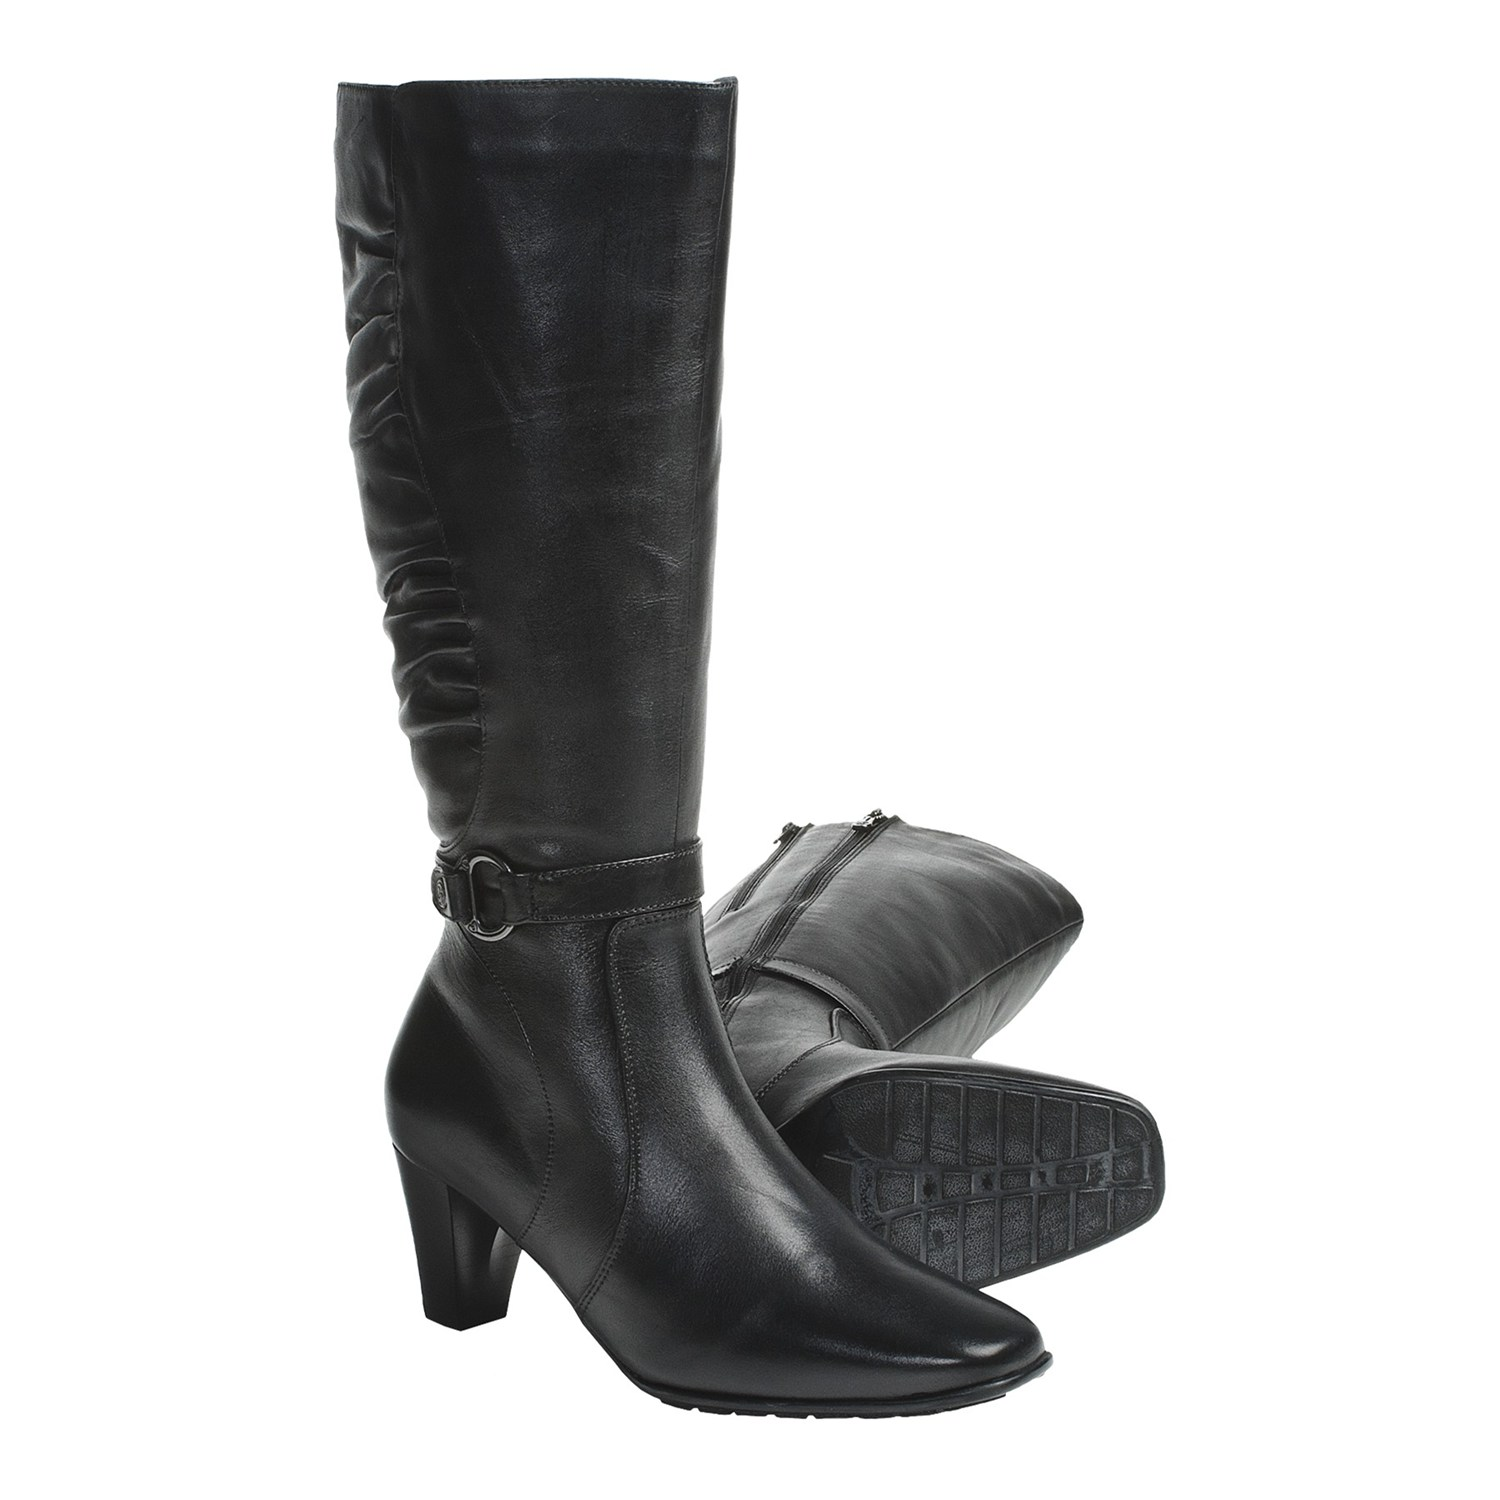 Knee High Boots For Women 4g01dg7P